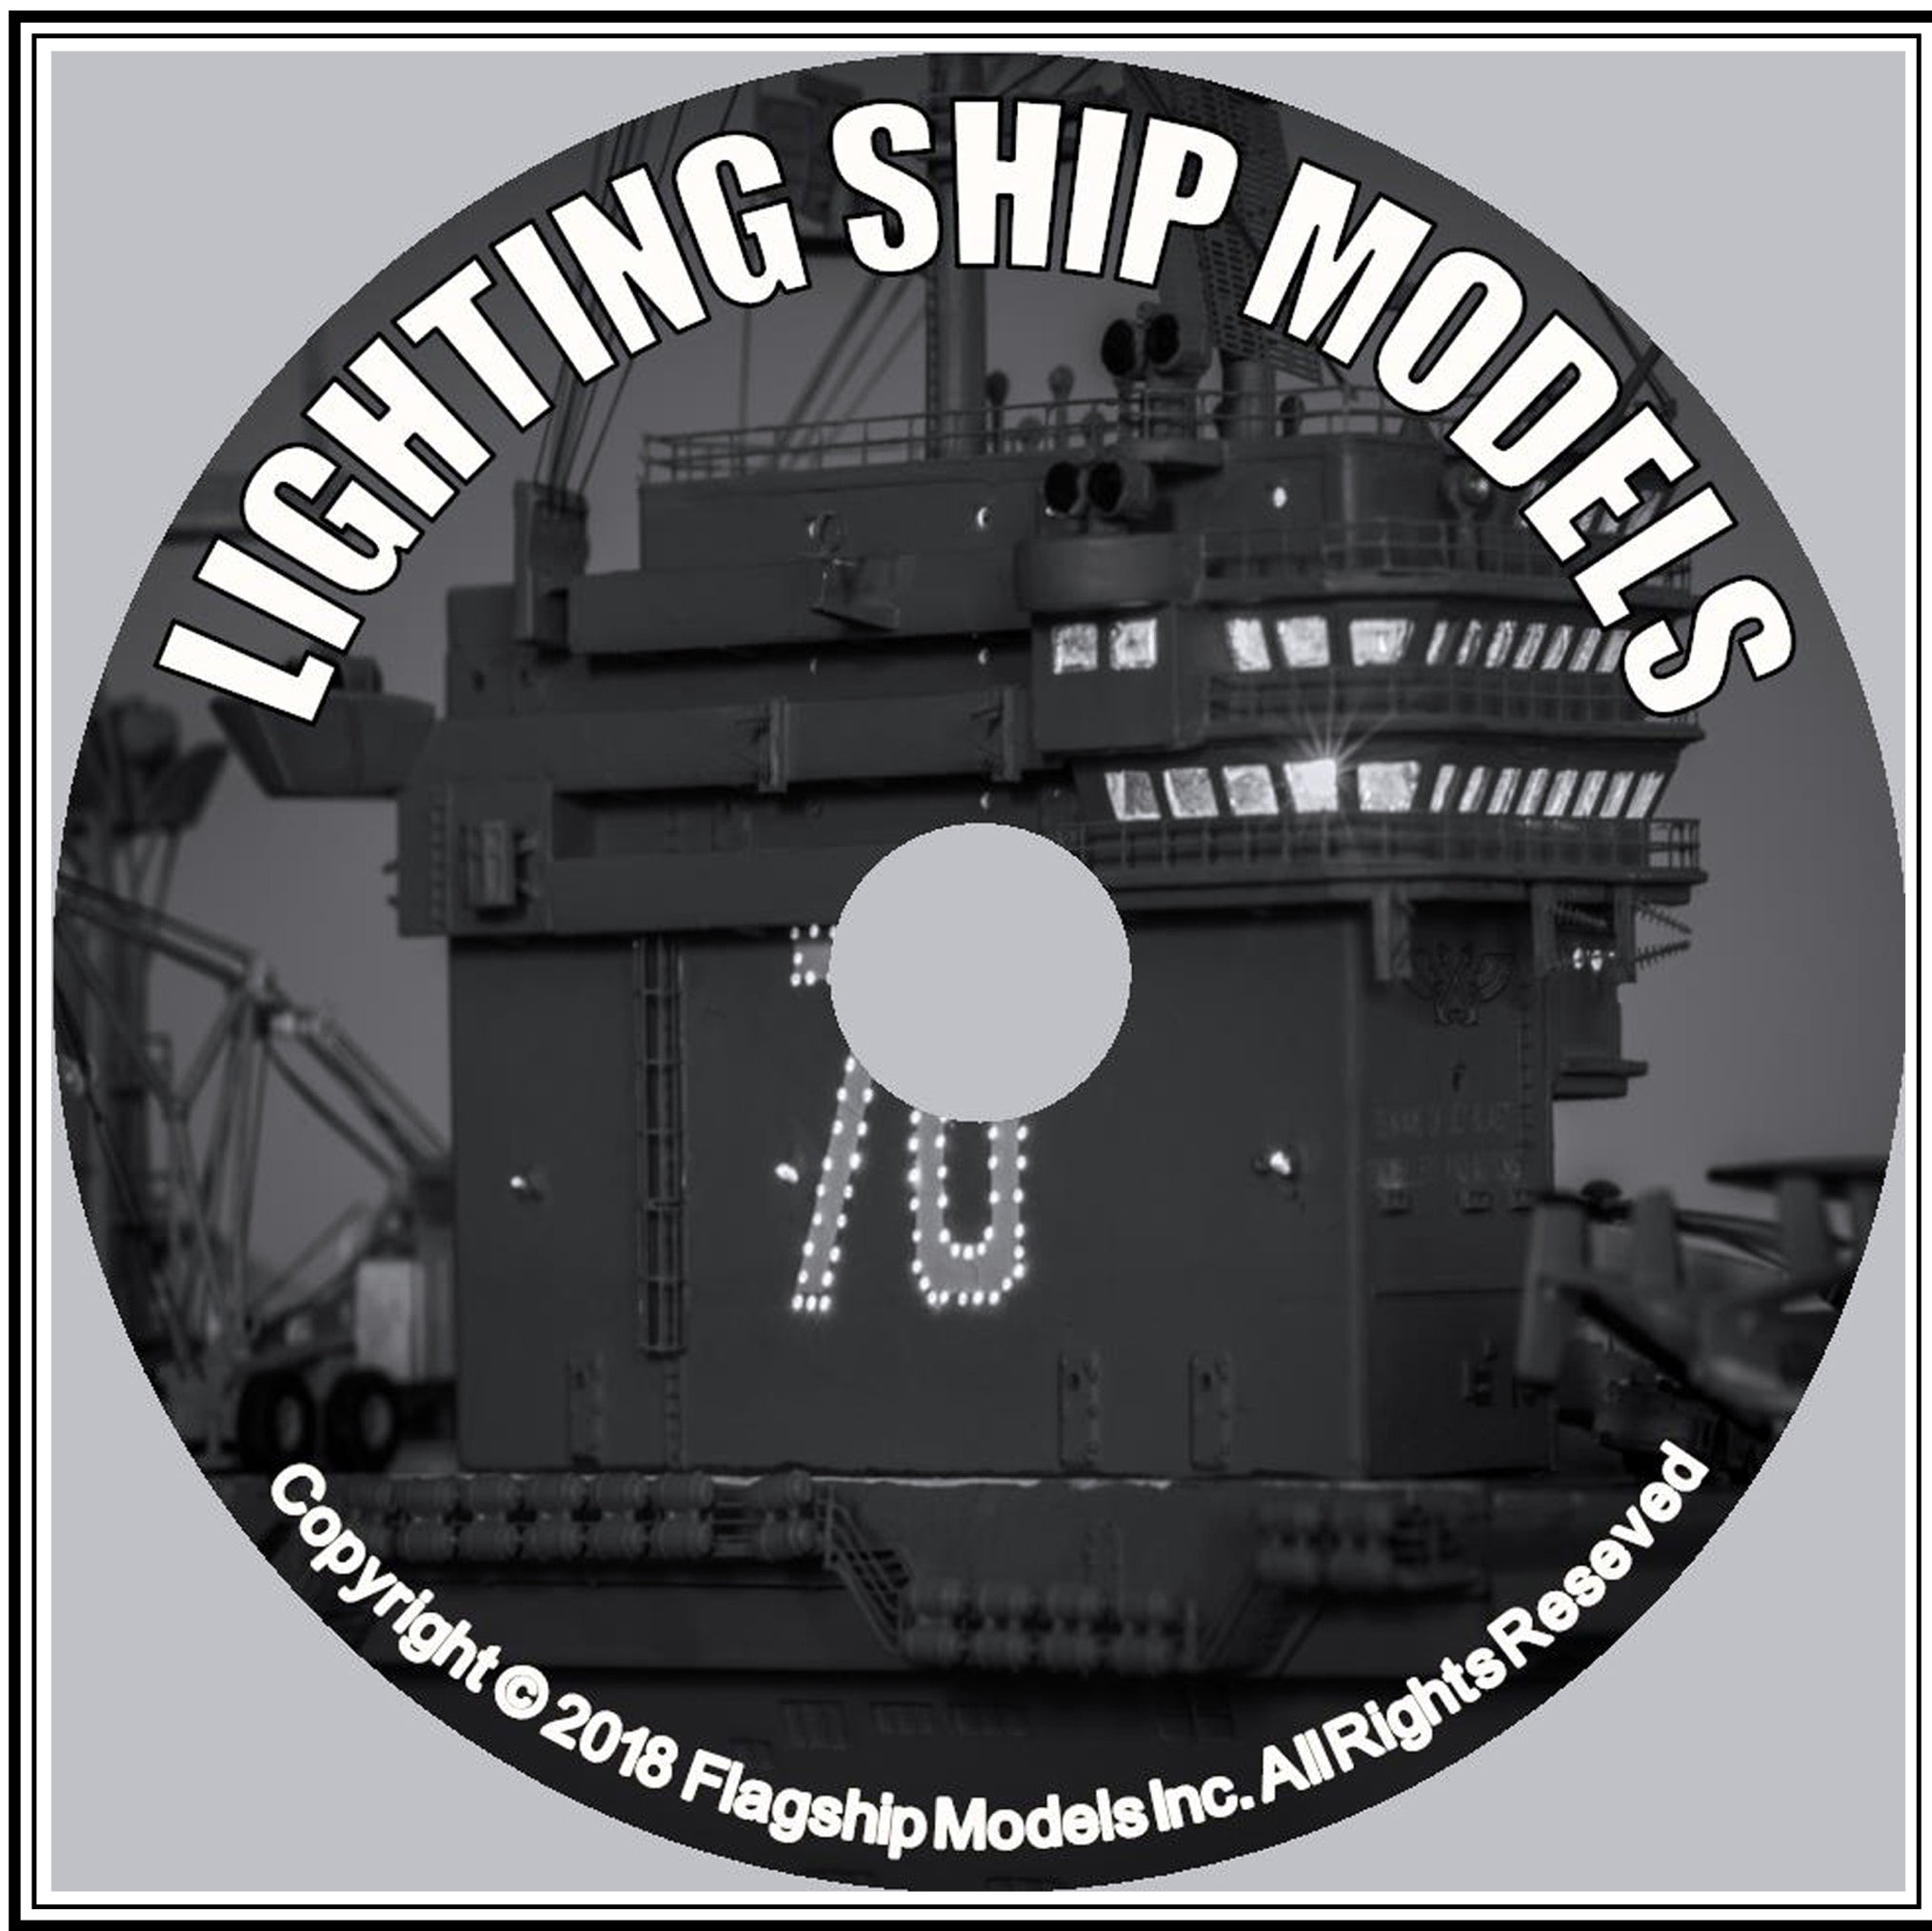 HOW TO CD: LIGHTING SHIP MODELS by Dave Kopielski